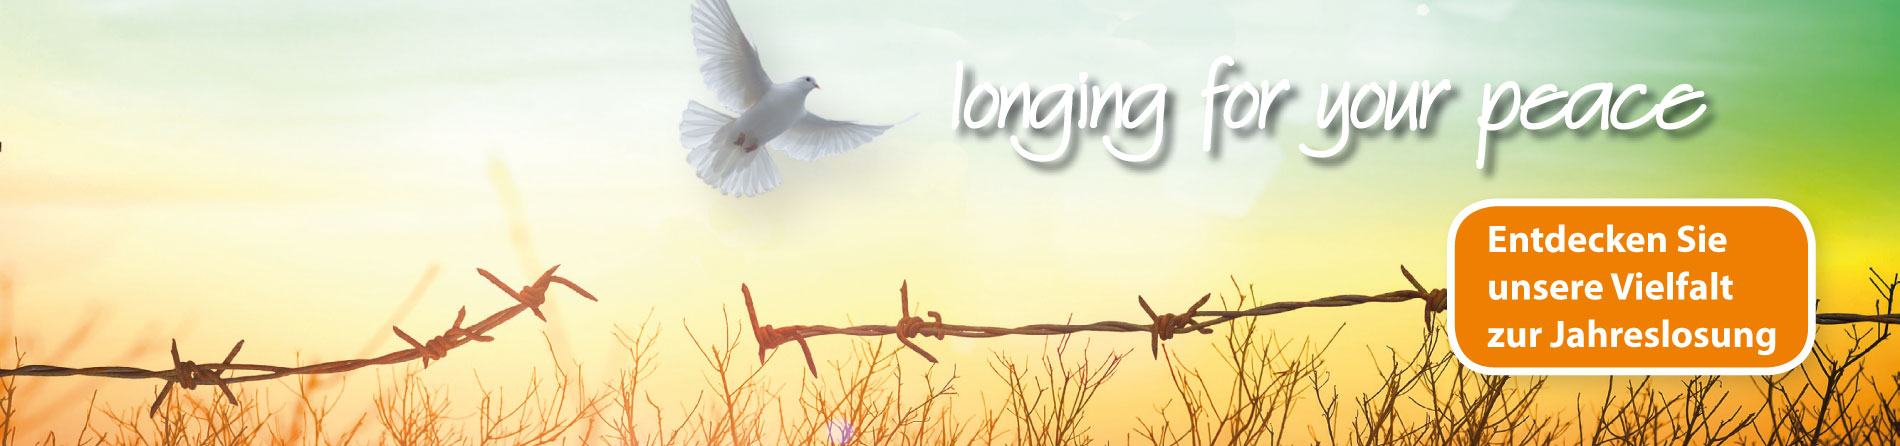 "Songs & Kanons, CDs, Poster & mehr , Kennen Sie unsere Notenausgabe ""Longing for your peace""